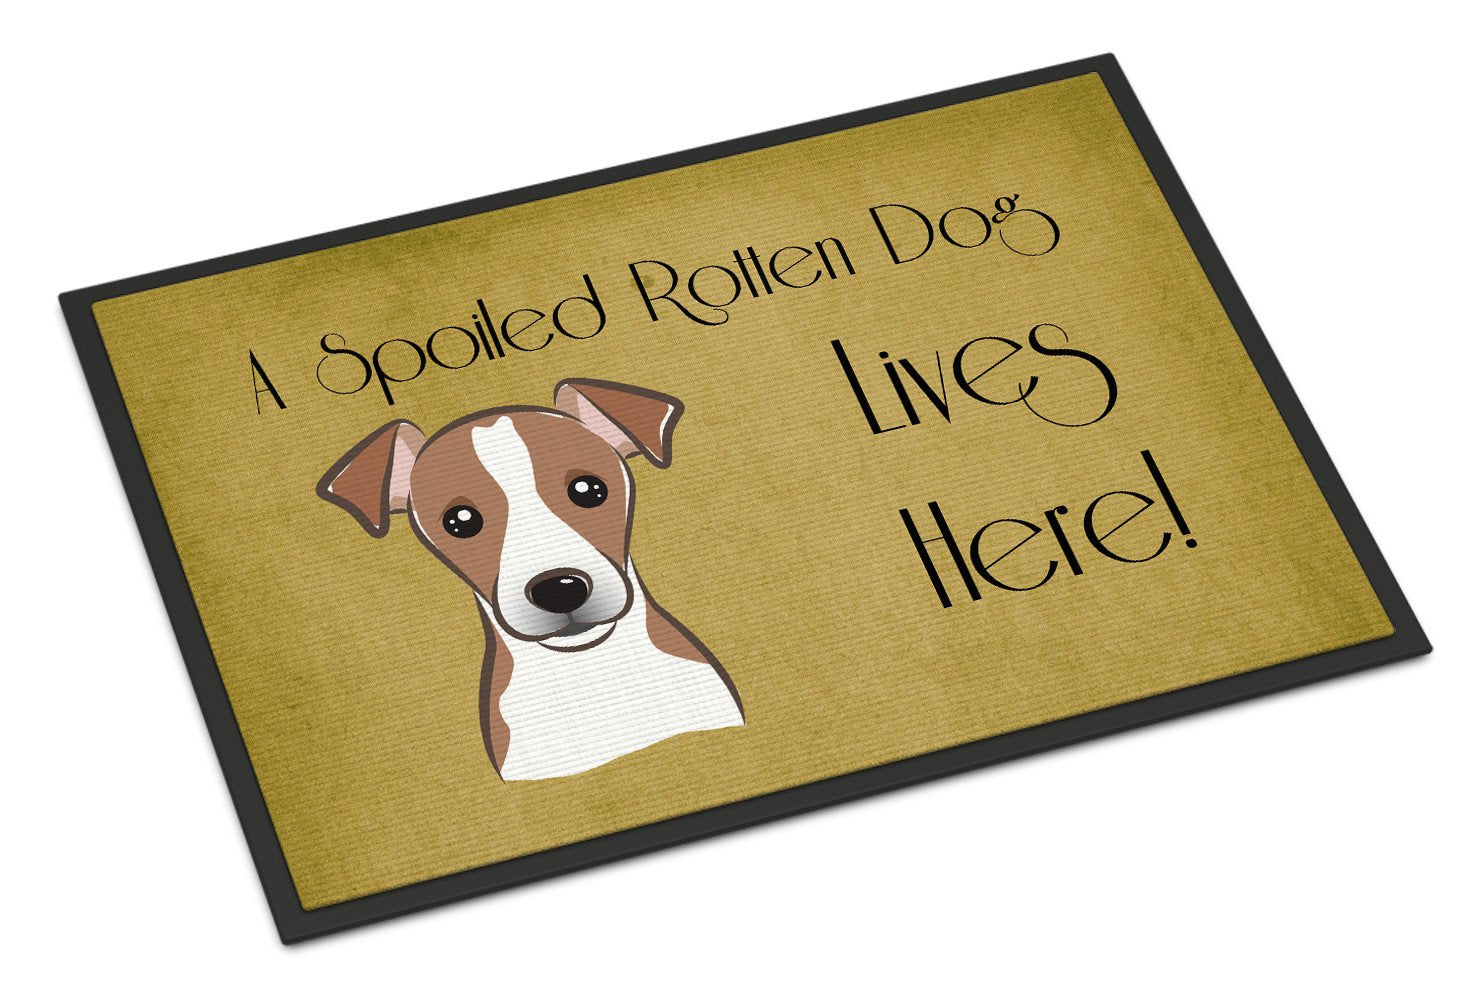 Jack Russell Terrier Spoiled Dog Lives Here Indoor or Outdoor Mat 18x27 BB1508MAT - the-store.com